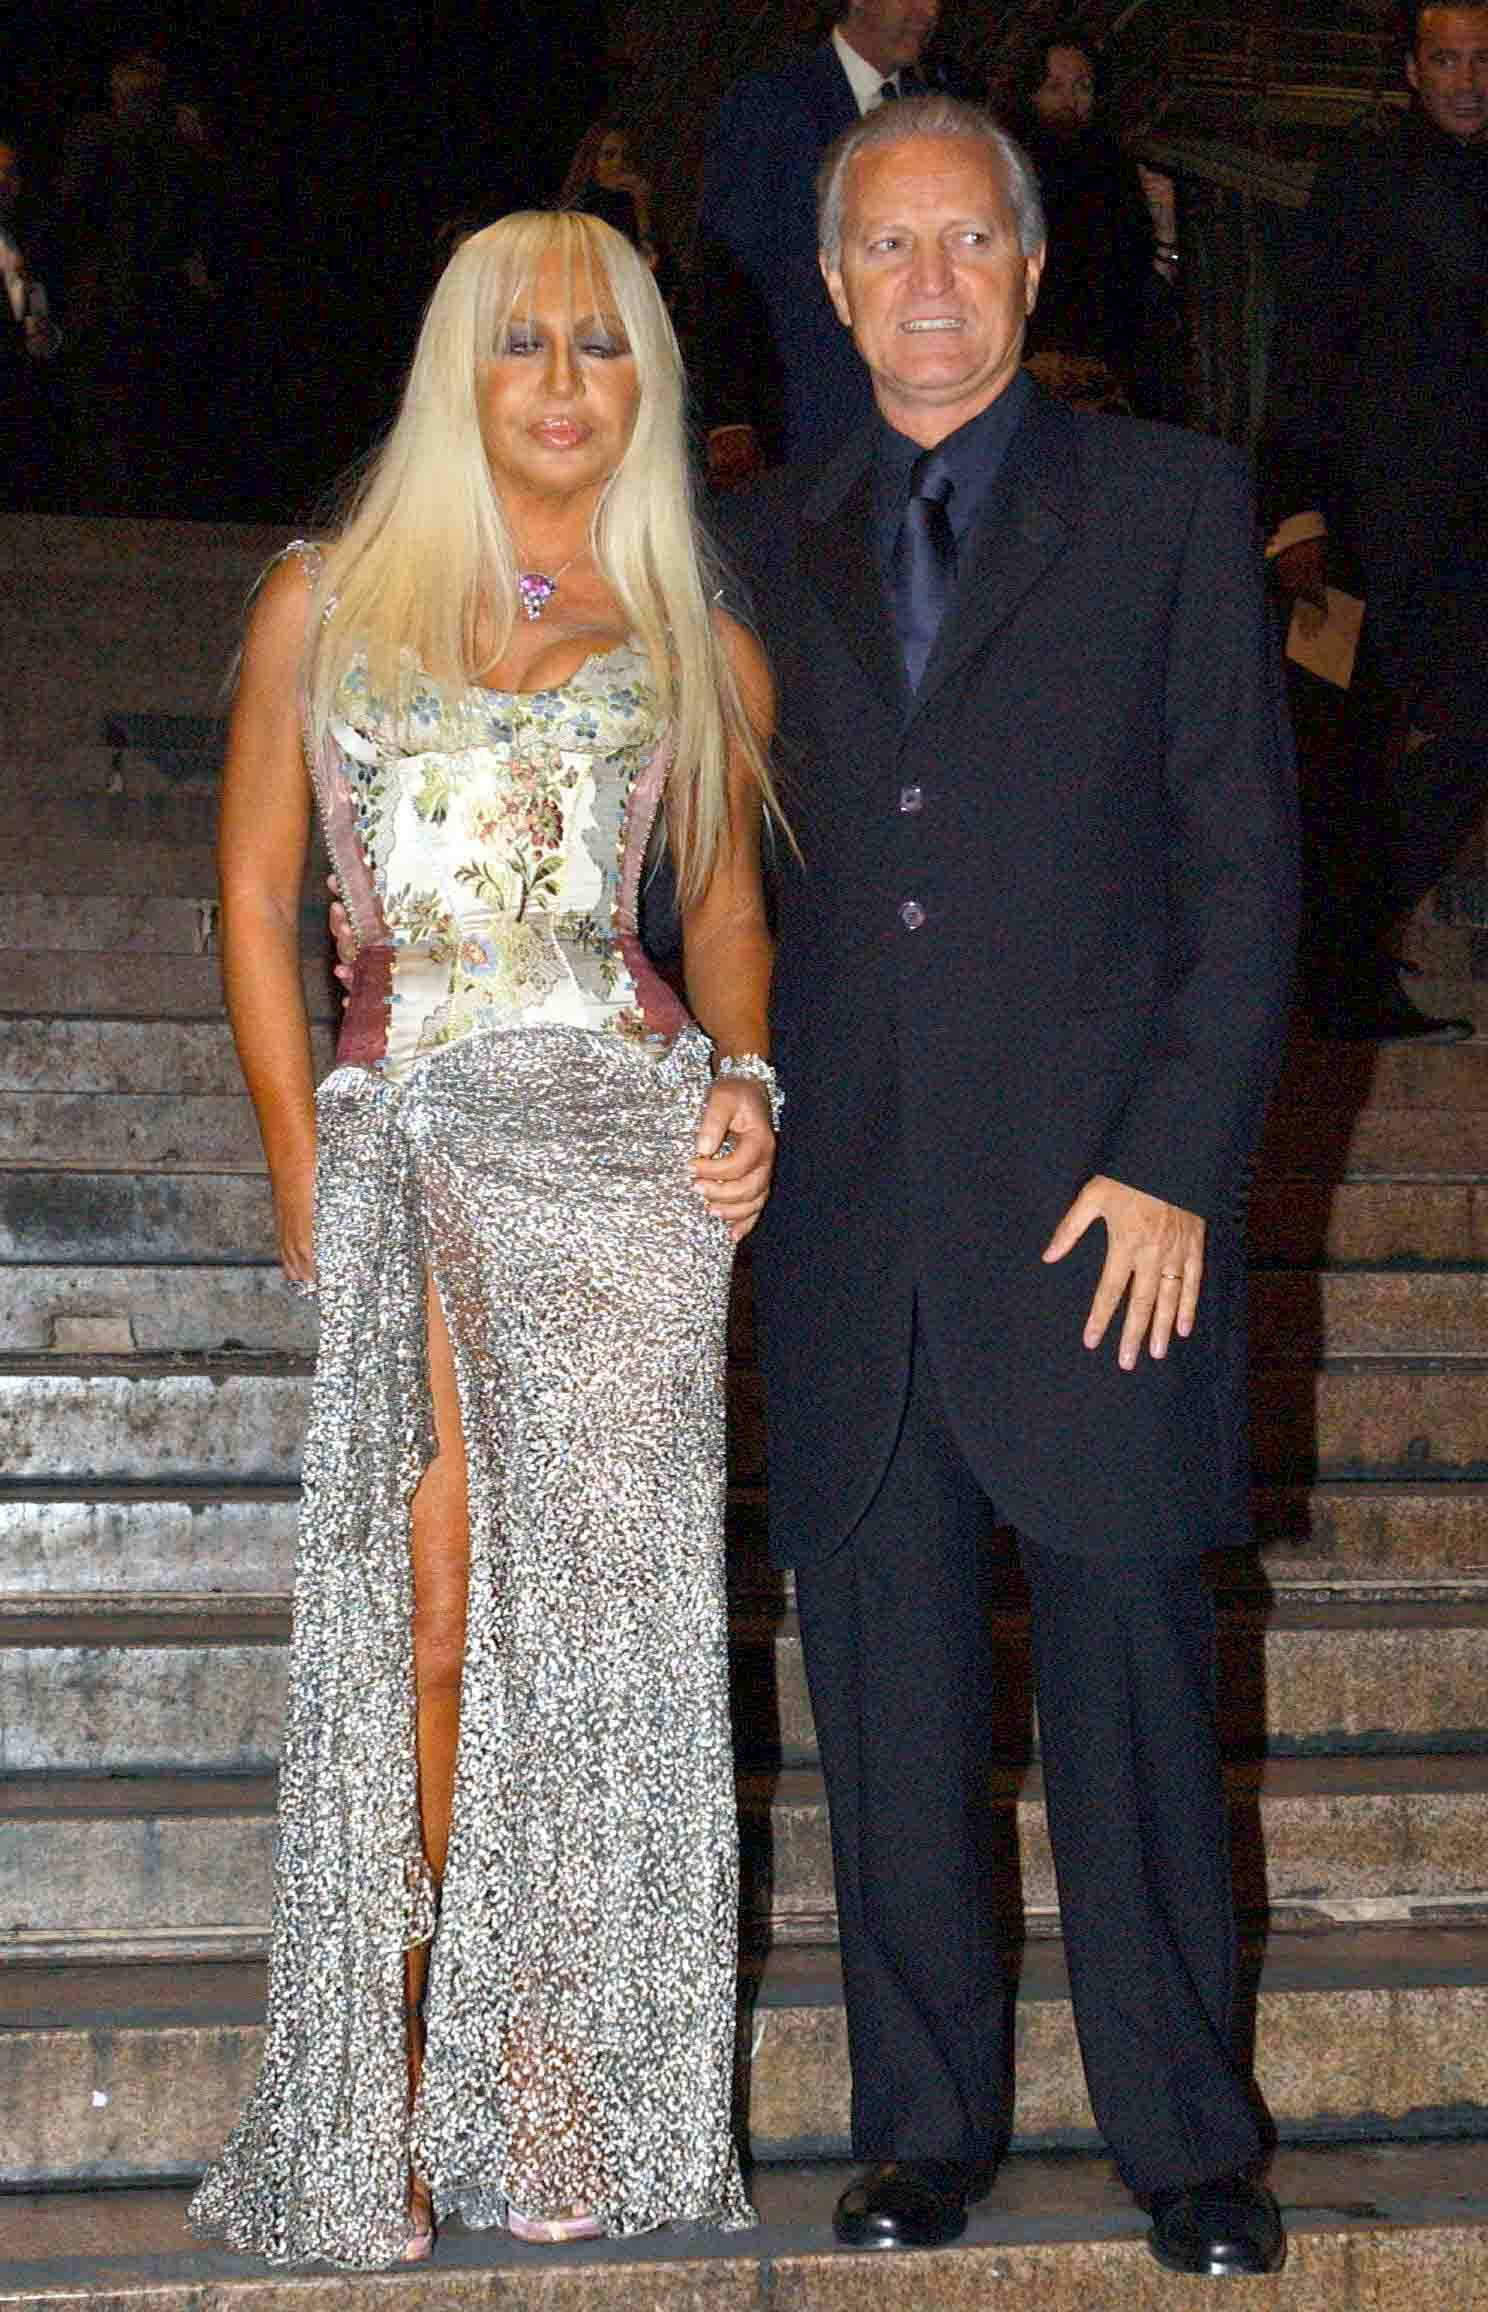 MILAN-24-09-2002 IN THE EVENING OF GALA IN HONOR OF REGINA RANIA OF JORDAN EVENT OF INAUGURATION EXHIBITION MARIO TESTINO PORTRAITS IN THE PHOTO SANTO AND DONATELLA VERSACE ON ARRIVAL AT THE EXHIBITION